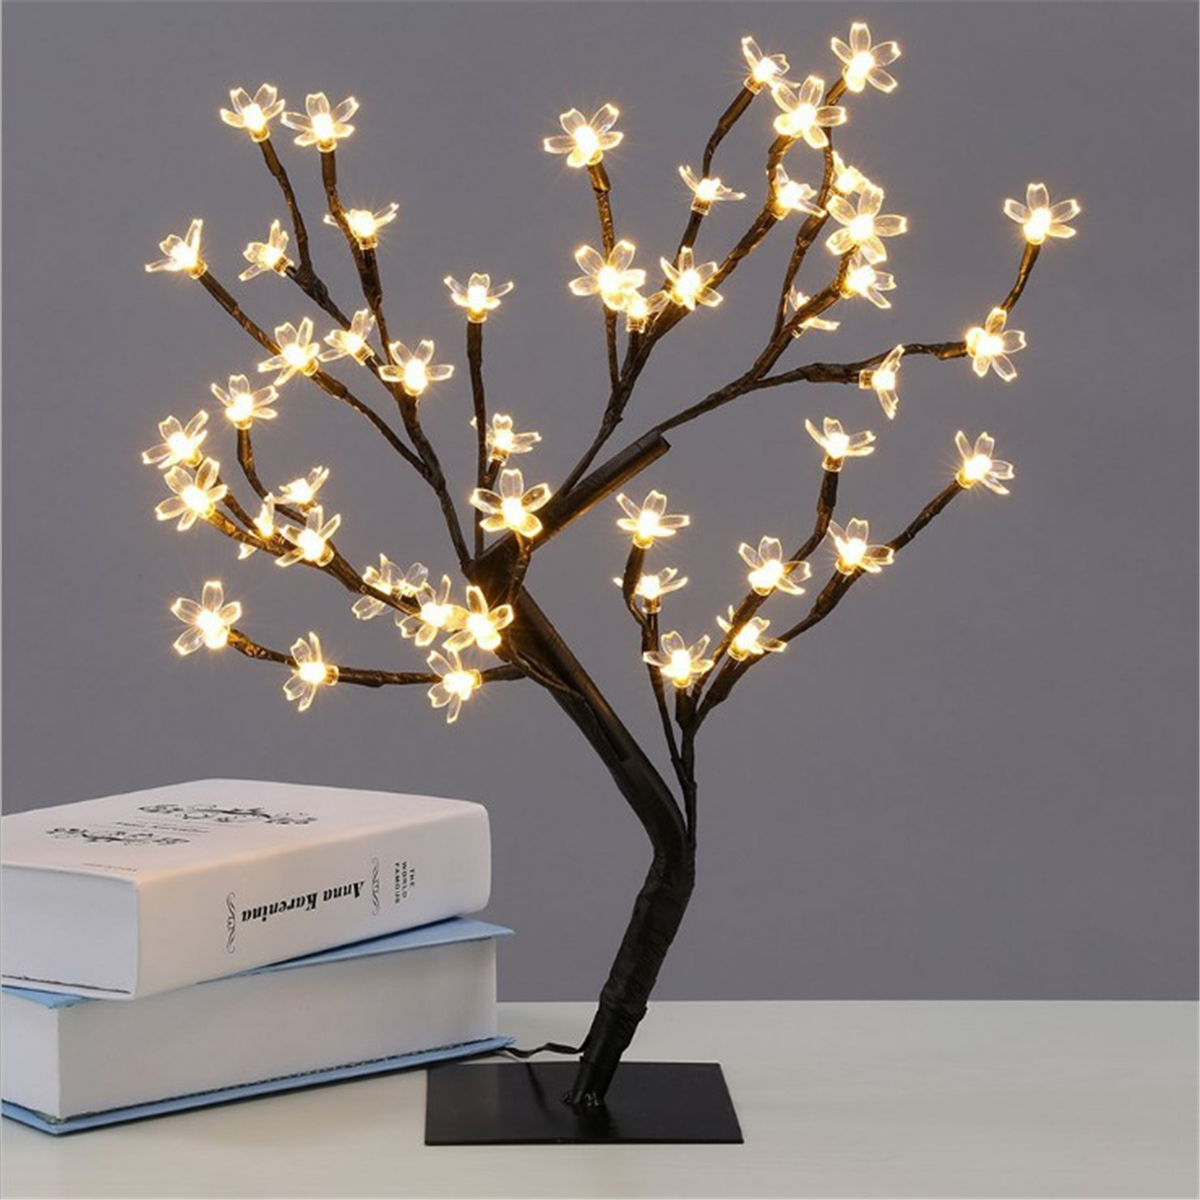 45cm Led Cherry Blossom Bonsai Sakura Tree With 72 Led